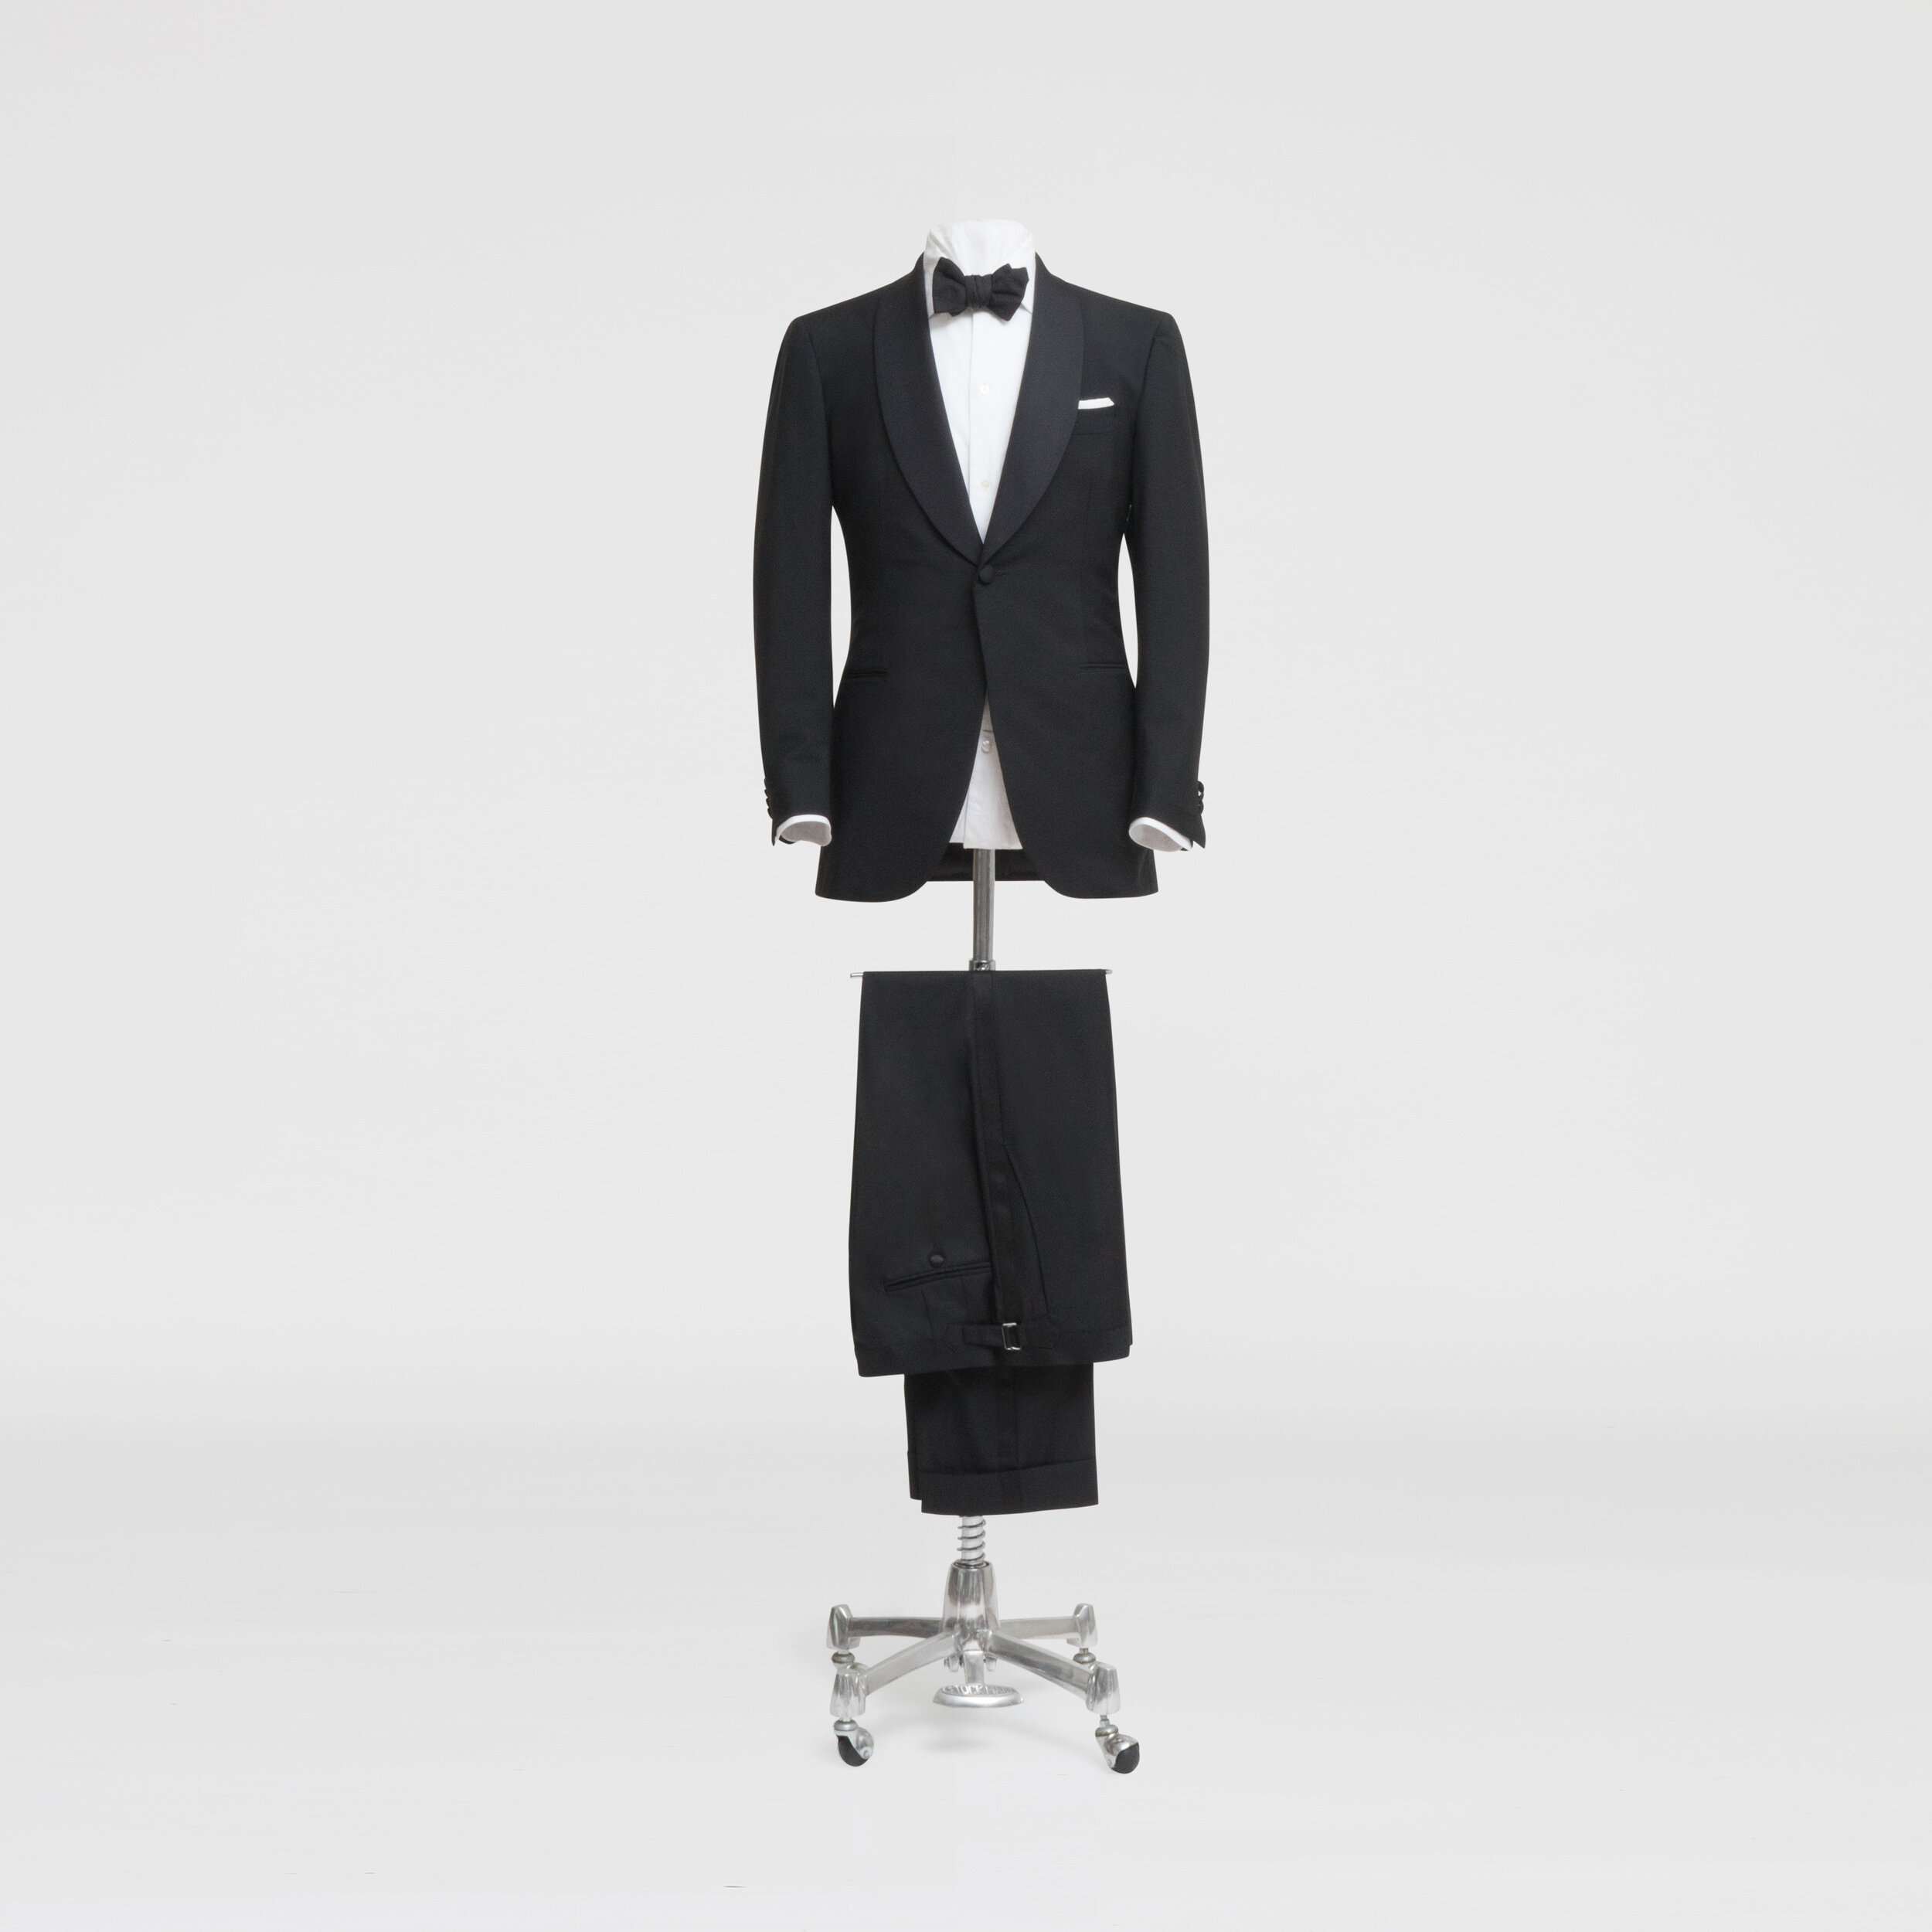 Traditional Weddings - For traditional weddings, a shawl collared, one buttoned black tuxedo is hard to go past. It's understated, elegant and will never go out of style.